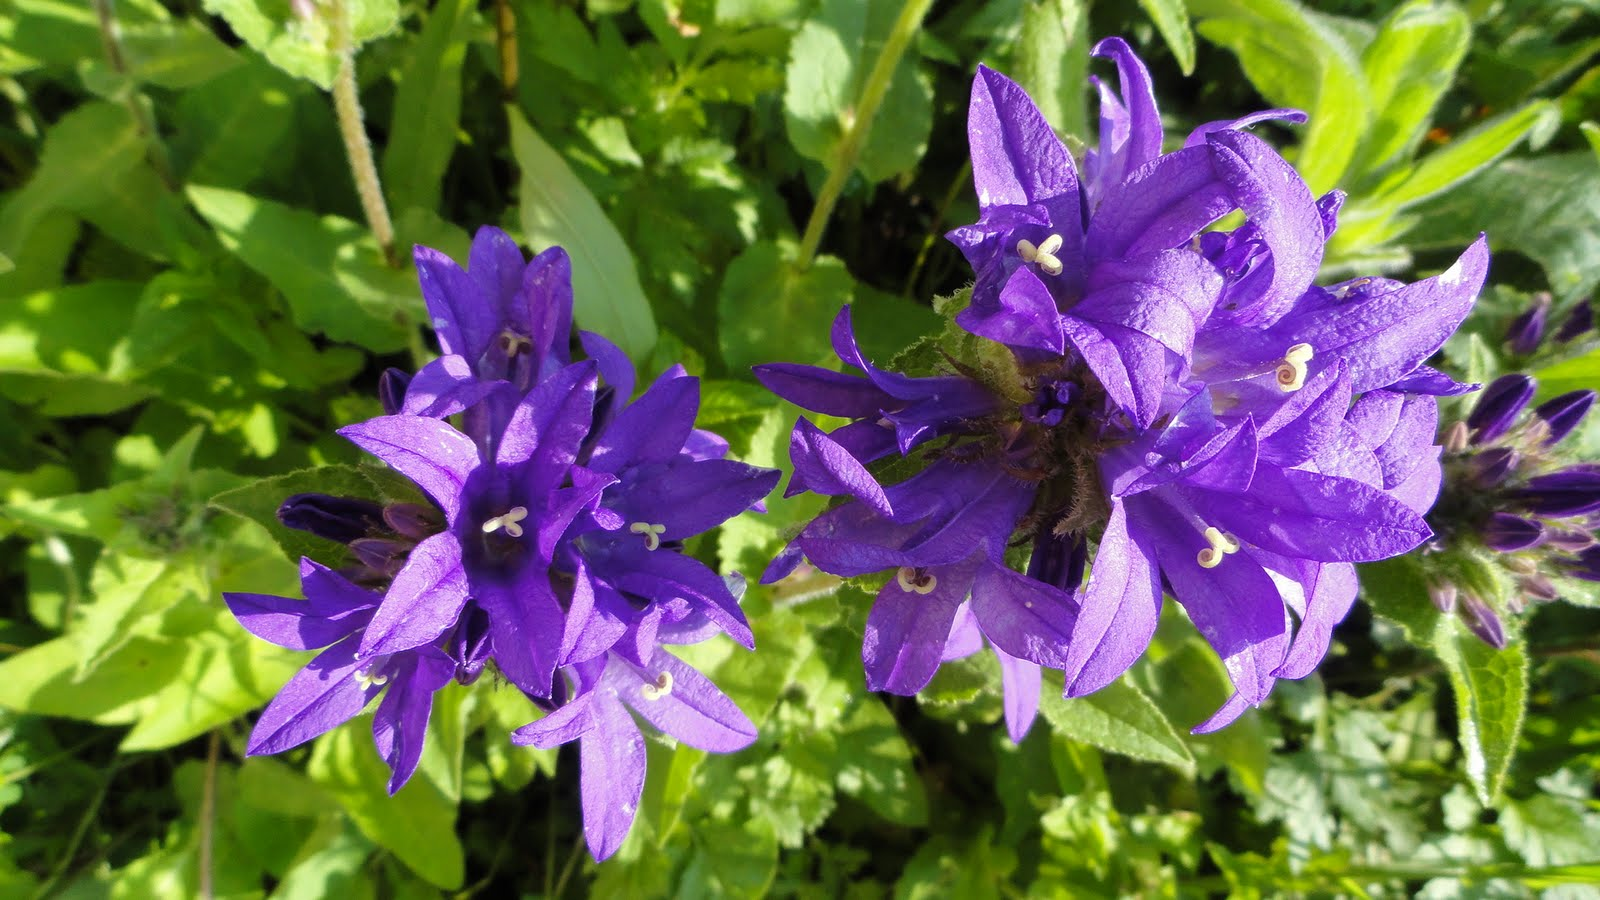 Dr Tsais Blog The Unknown Purple Flower In Our Garden And In